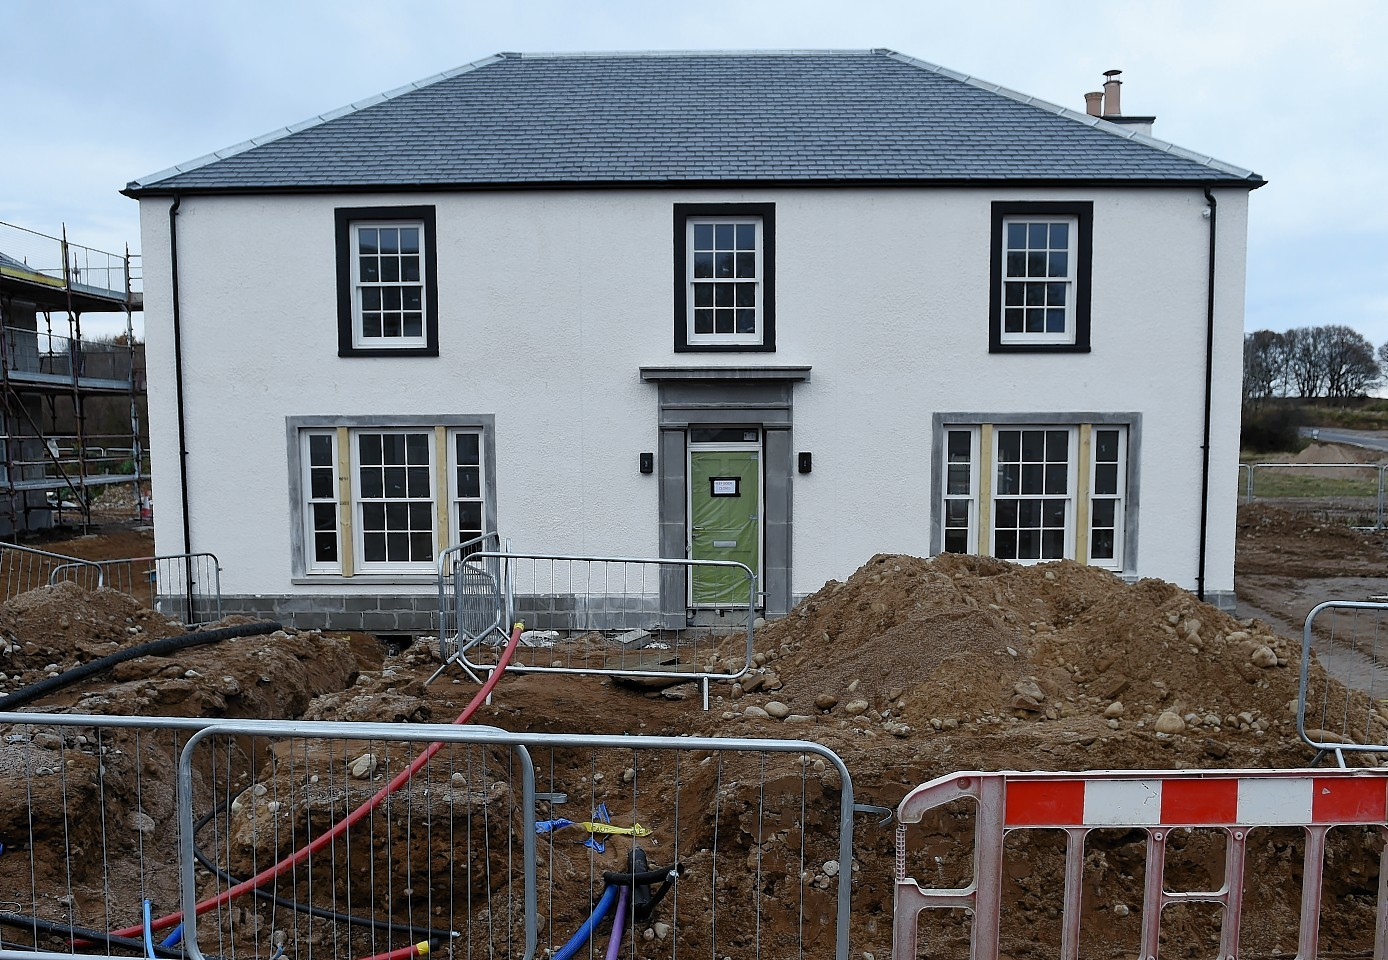 The housing development at Tornagrain continues with some of the houses nearing completion.